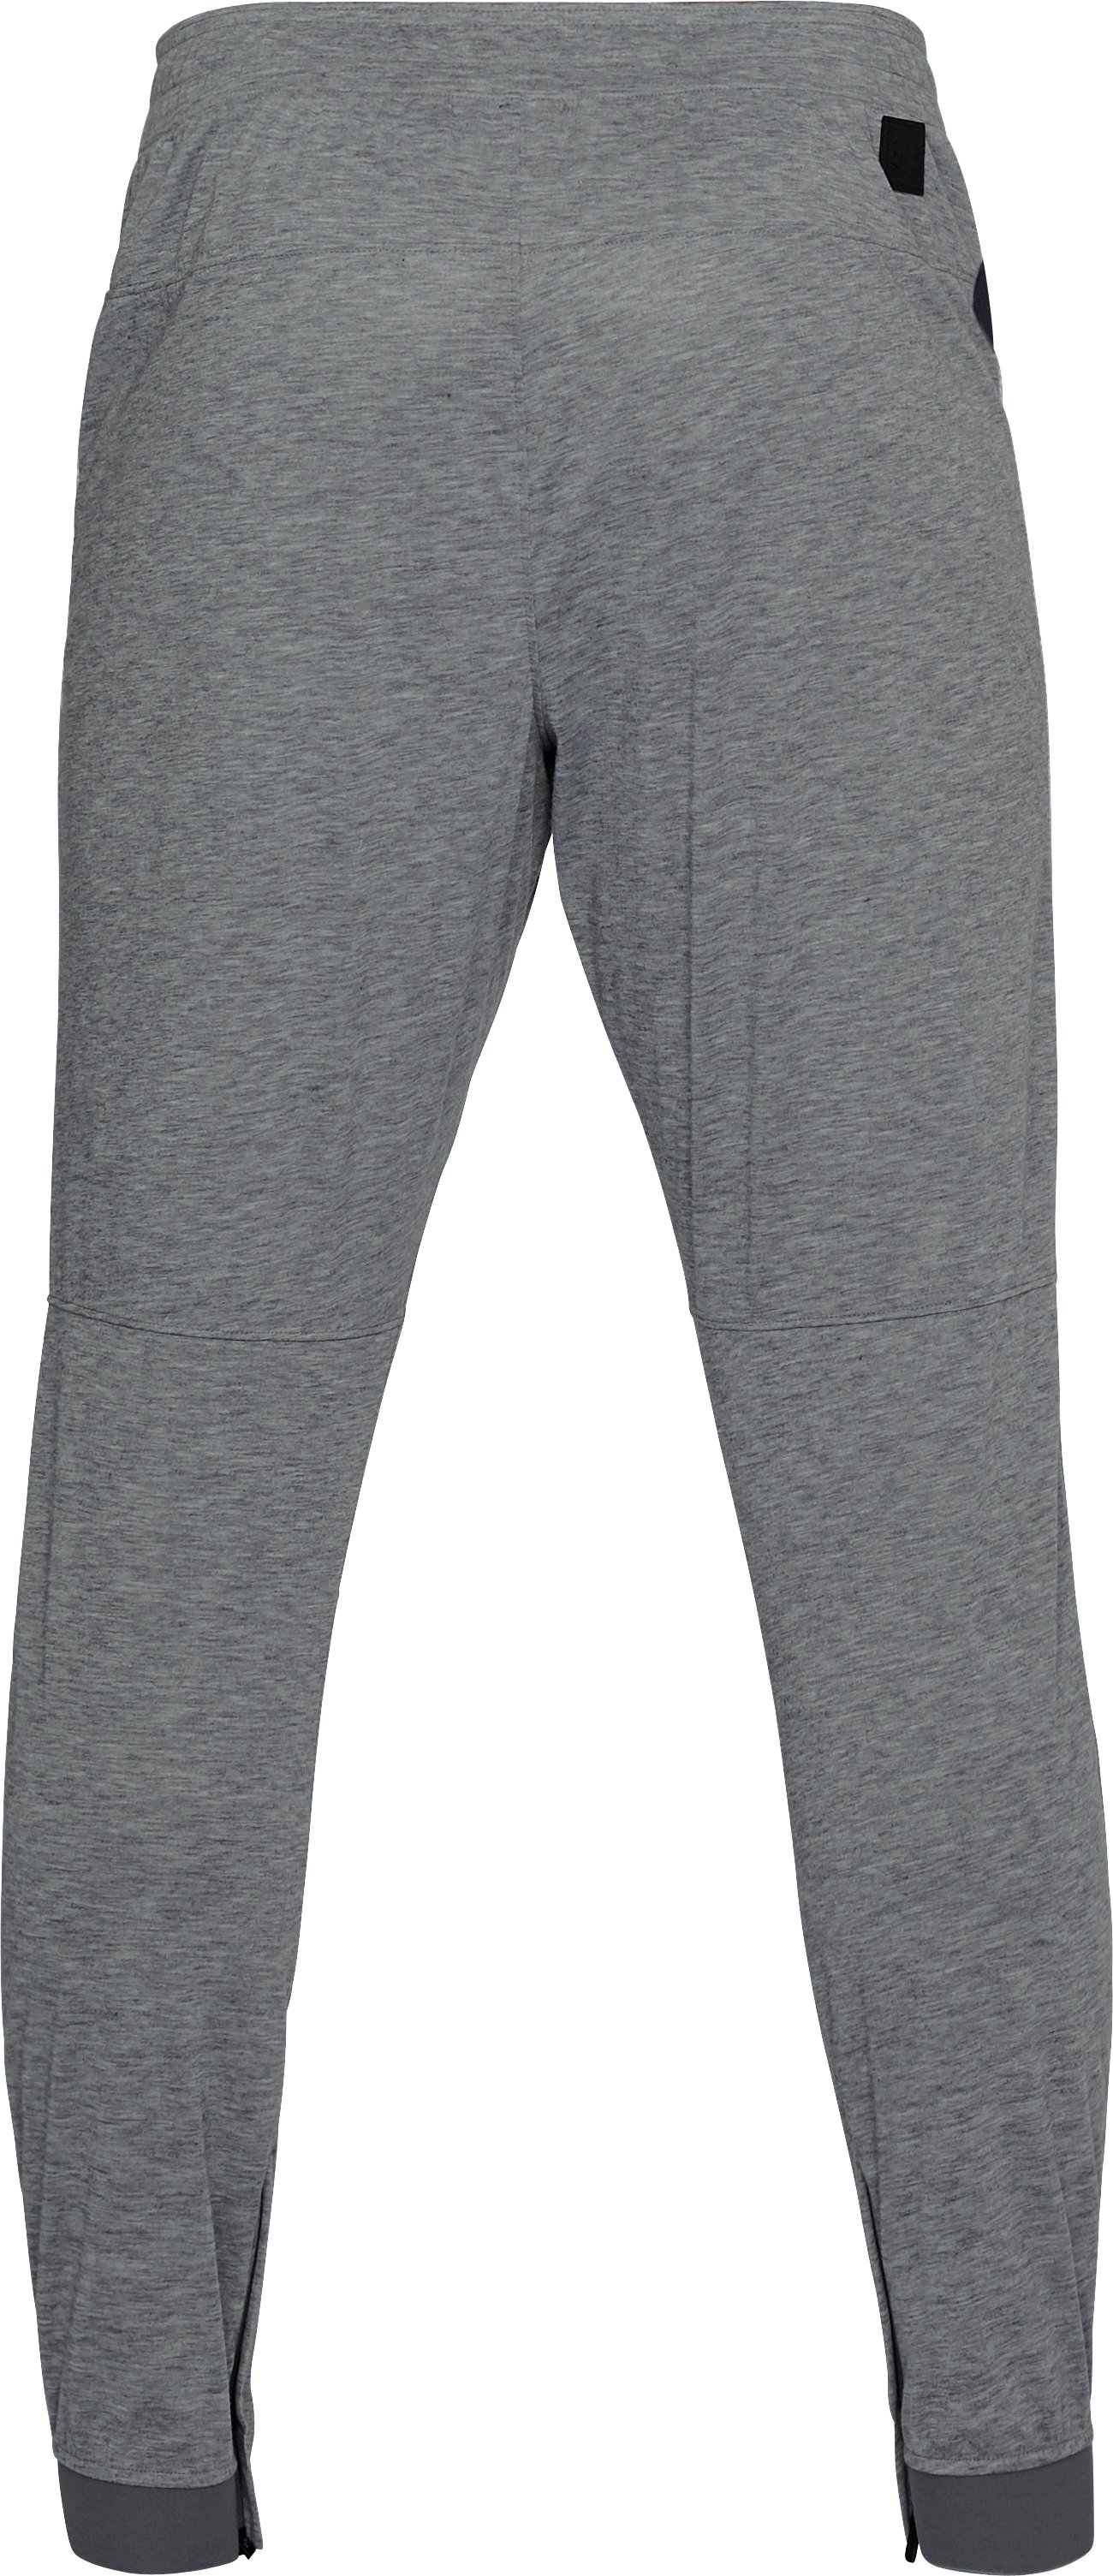 Men's UA Swacket Pants, STEEL FULL HEATHER, undefined